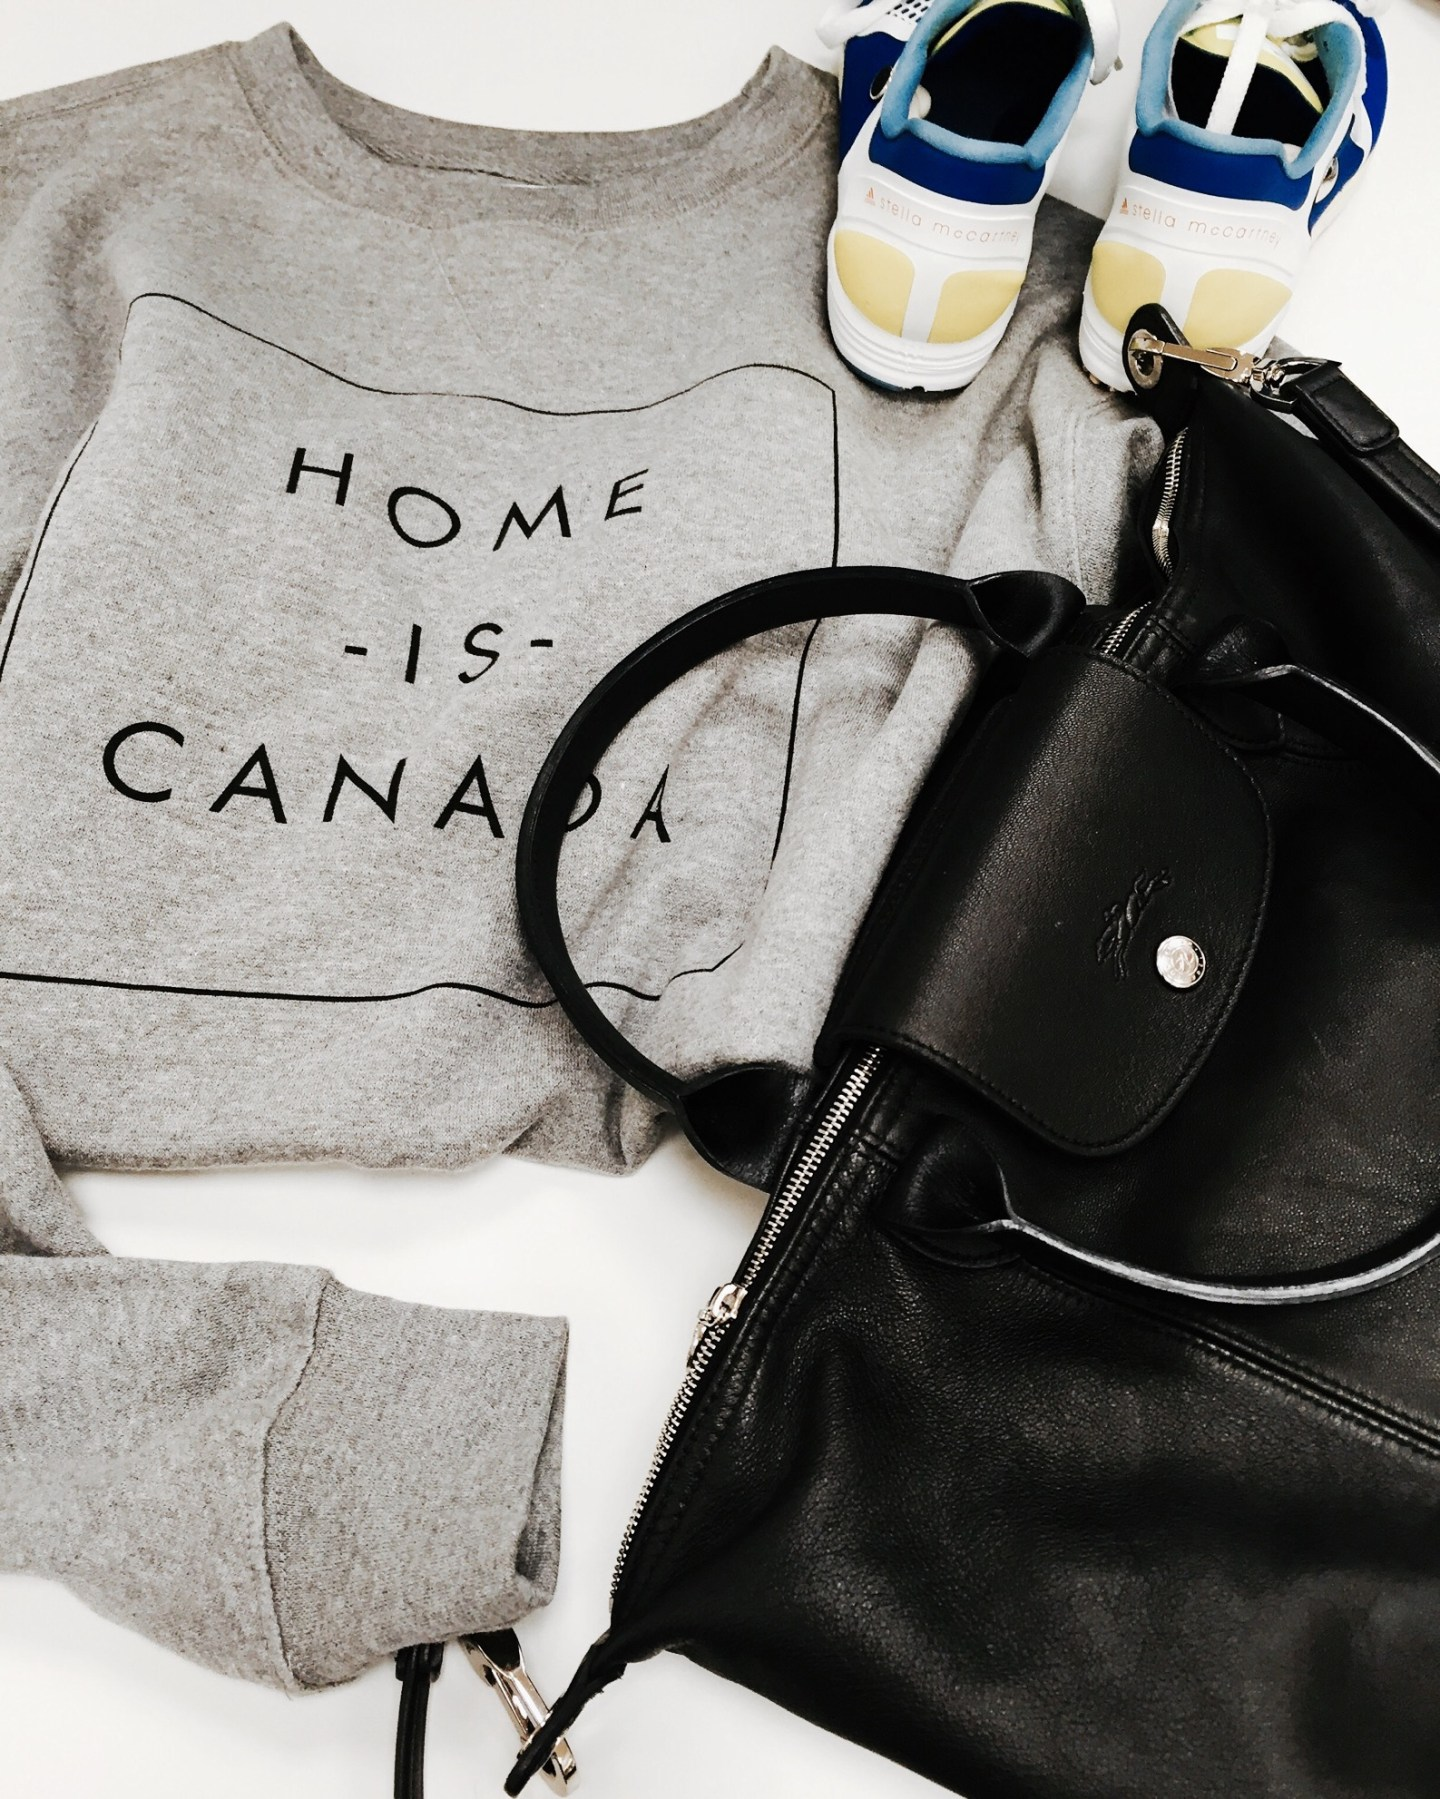 Outfit of the day: peace collective hoodie. Stella mcCartney sneakers